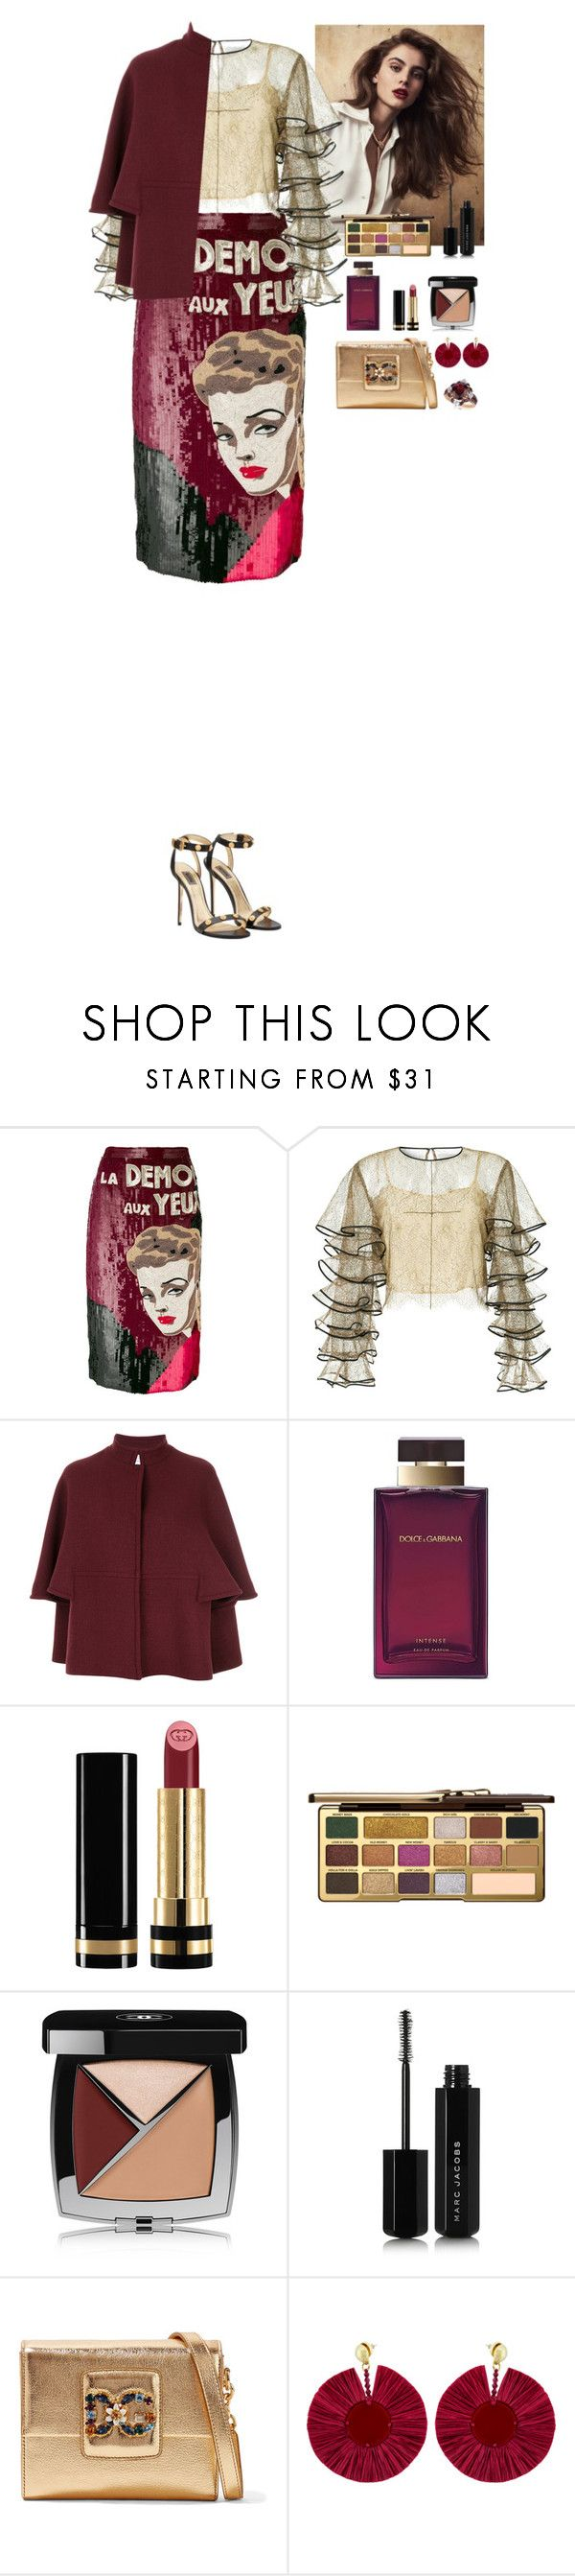 """Event"" by eliza-redkina ❤ liked on Polyvore featuring Olympia Le-Tan, HUISHAN ZHANG, Gianluca Capannolo, Dolce&Gabbana, Gucci, Too Faced Cosmetics, Chanel, Marc Jacobs, Oscar de la Renta and LE VIAN"